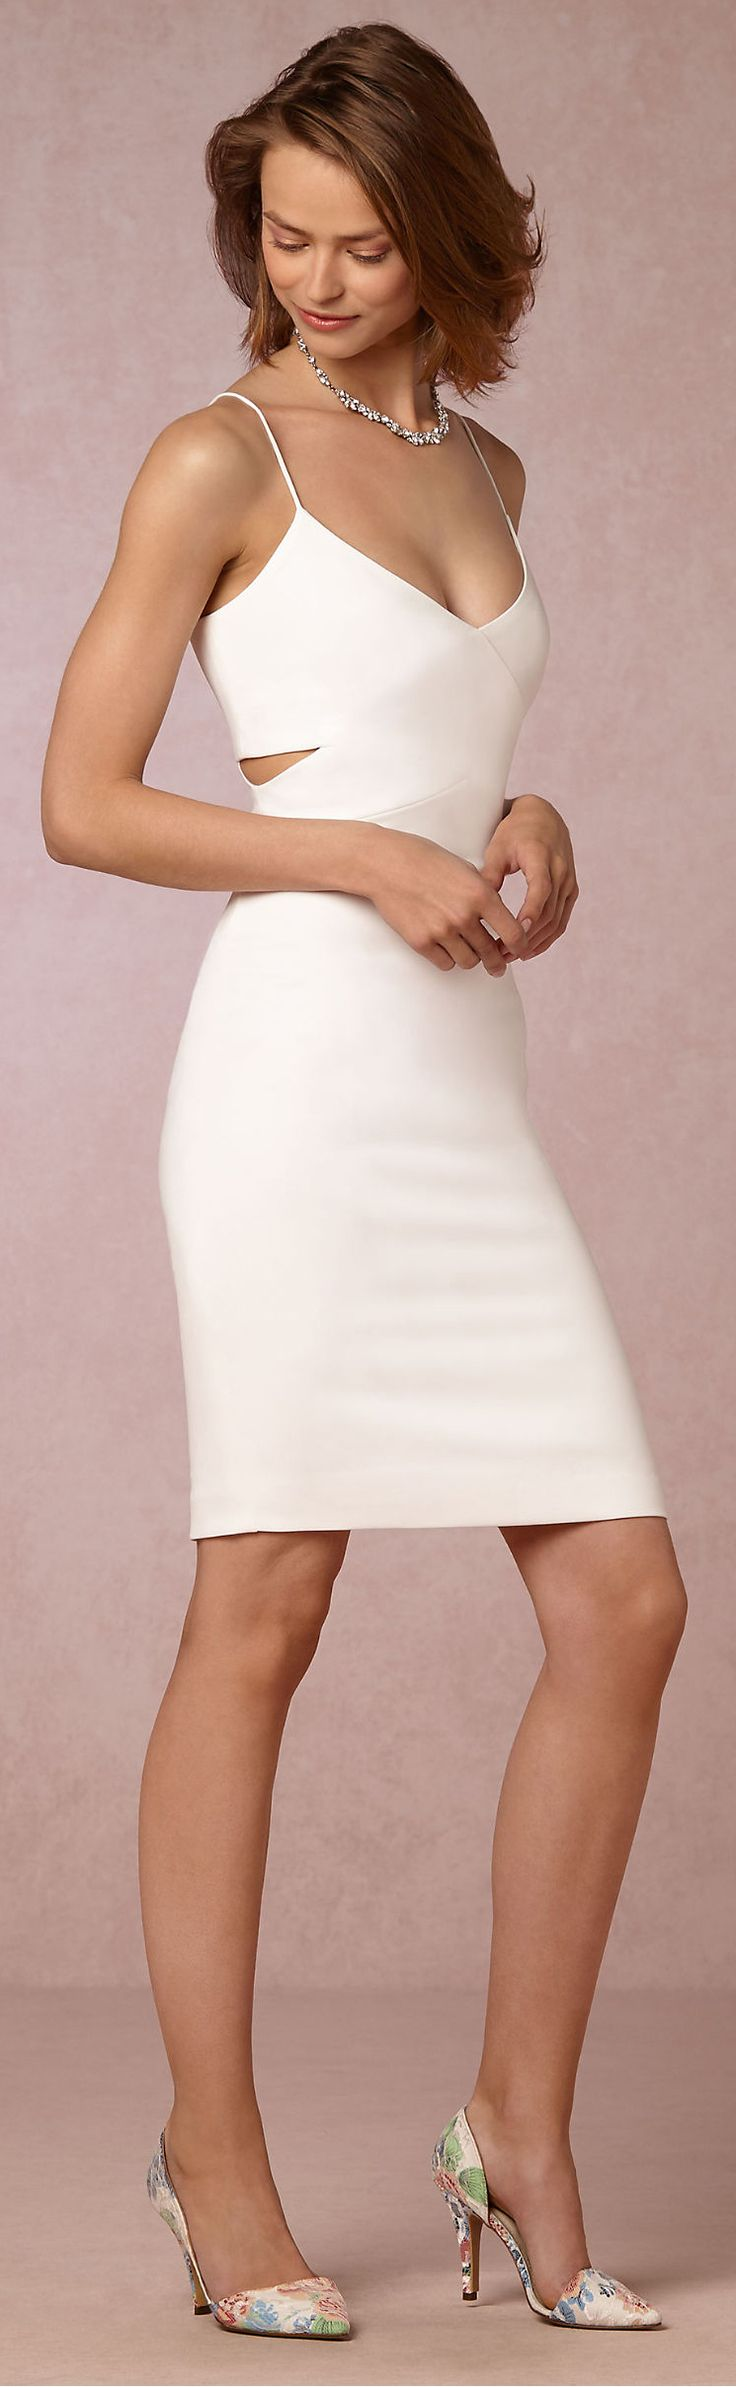 17 Best ideas about White Cocktail Dresses on Pinterest | Cocktail ...